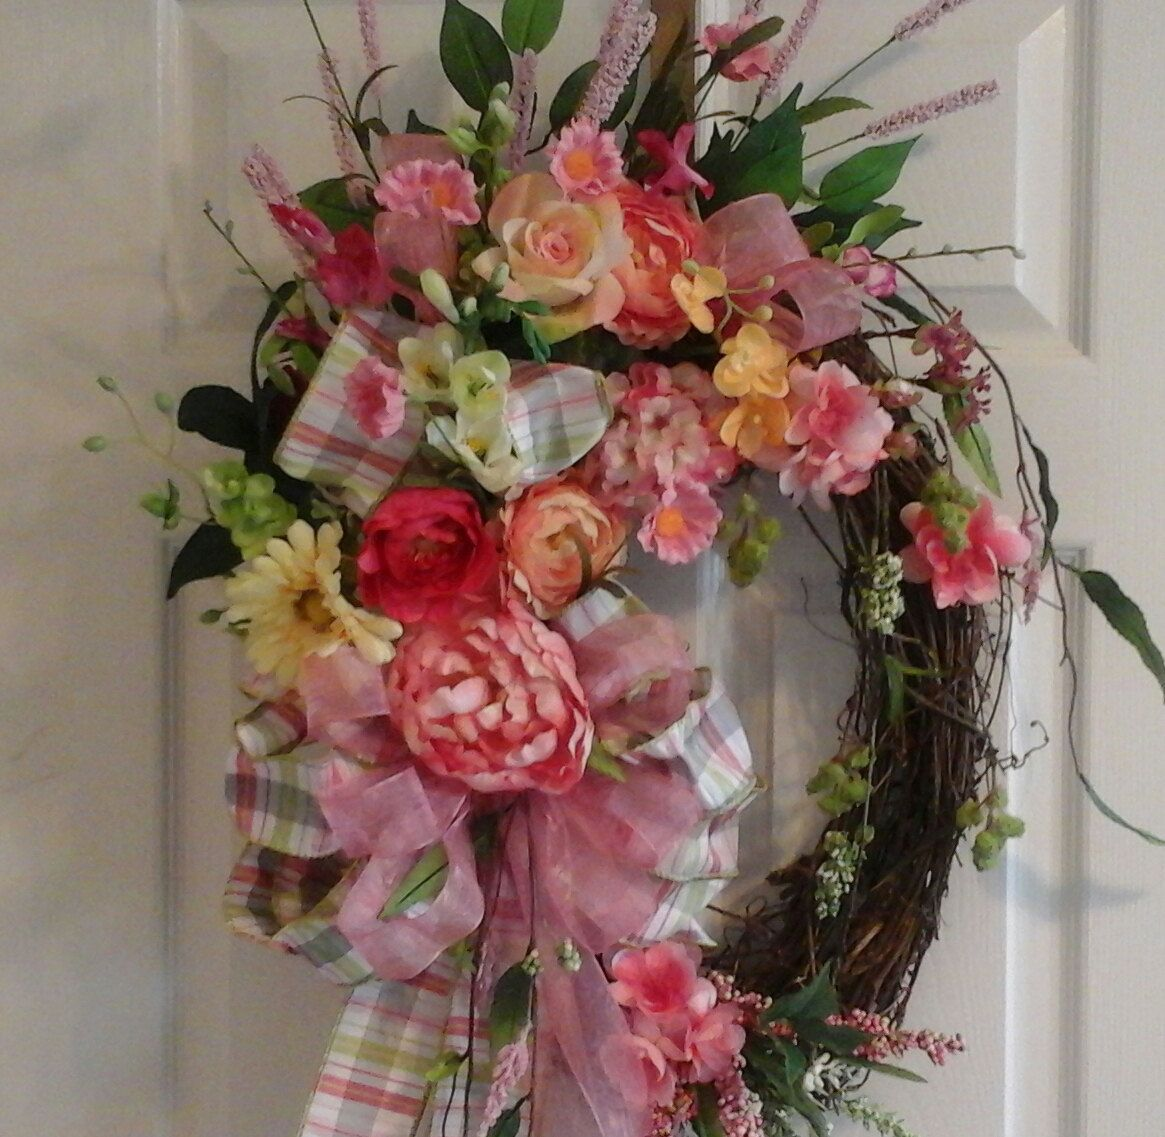 Spring Summer Wreath, FREE SHIPPING,Grapevine Wreath, Elegant Pastel Door, Mantel, Foyer, Kitchen Oval  Wreath, Mothers Day Gift, by GiftsByWhatABeautifu on Etsy